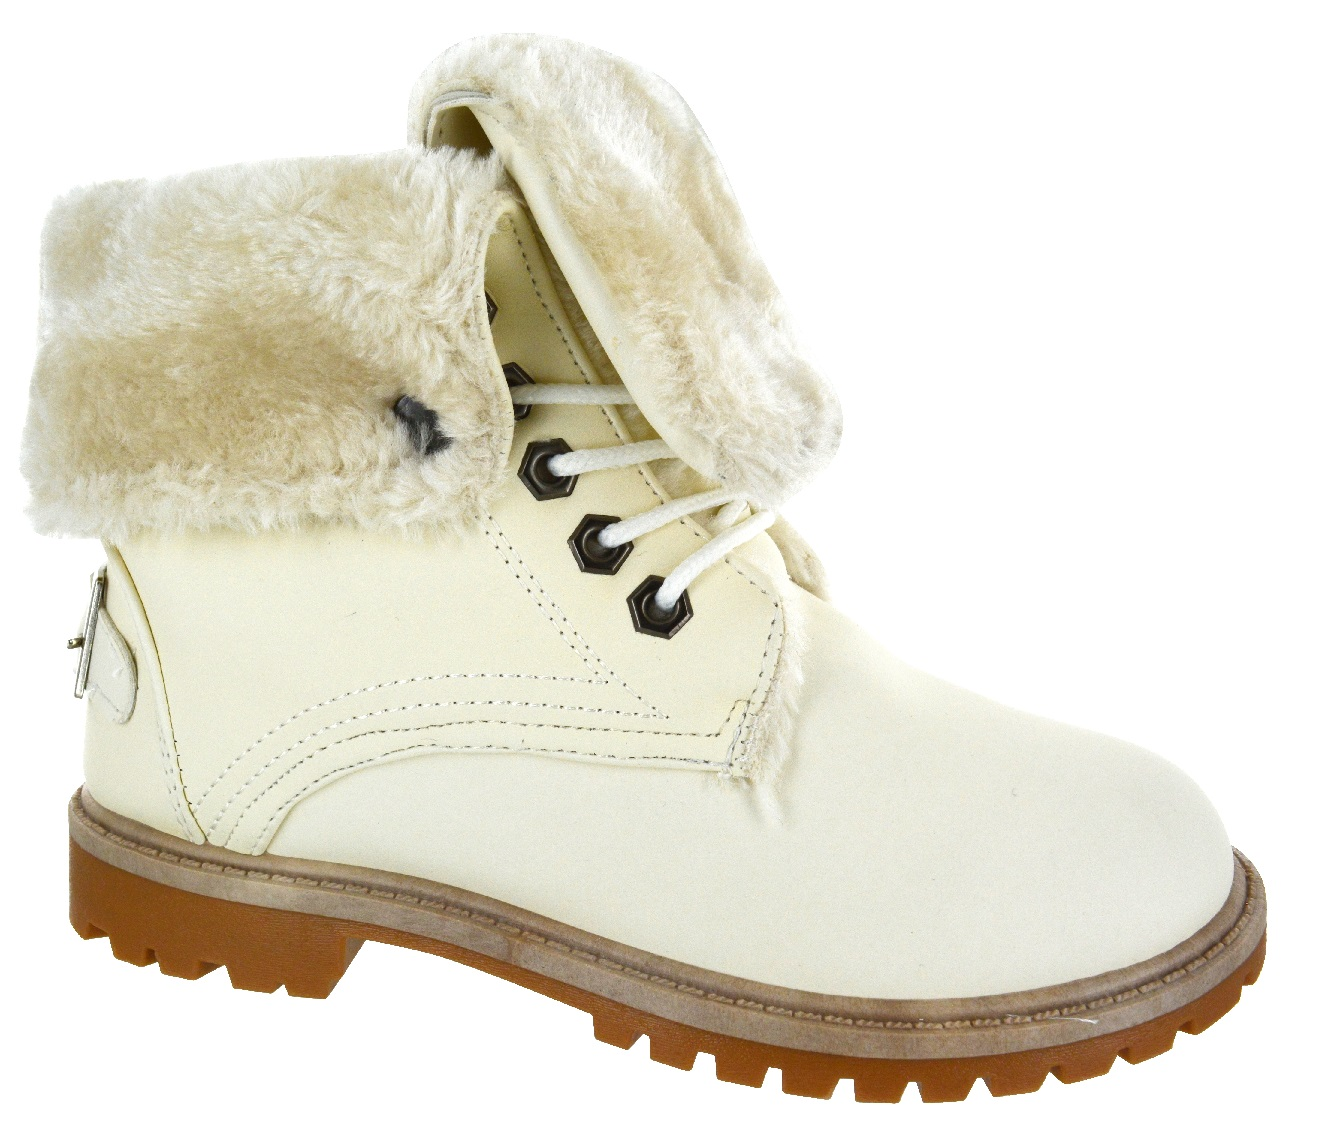 womens flat fur lined grip sole winter army combat